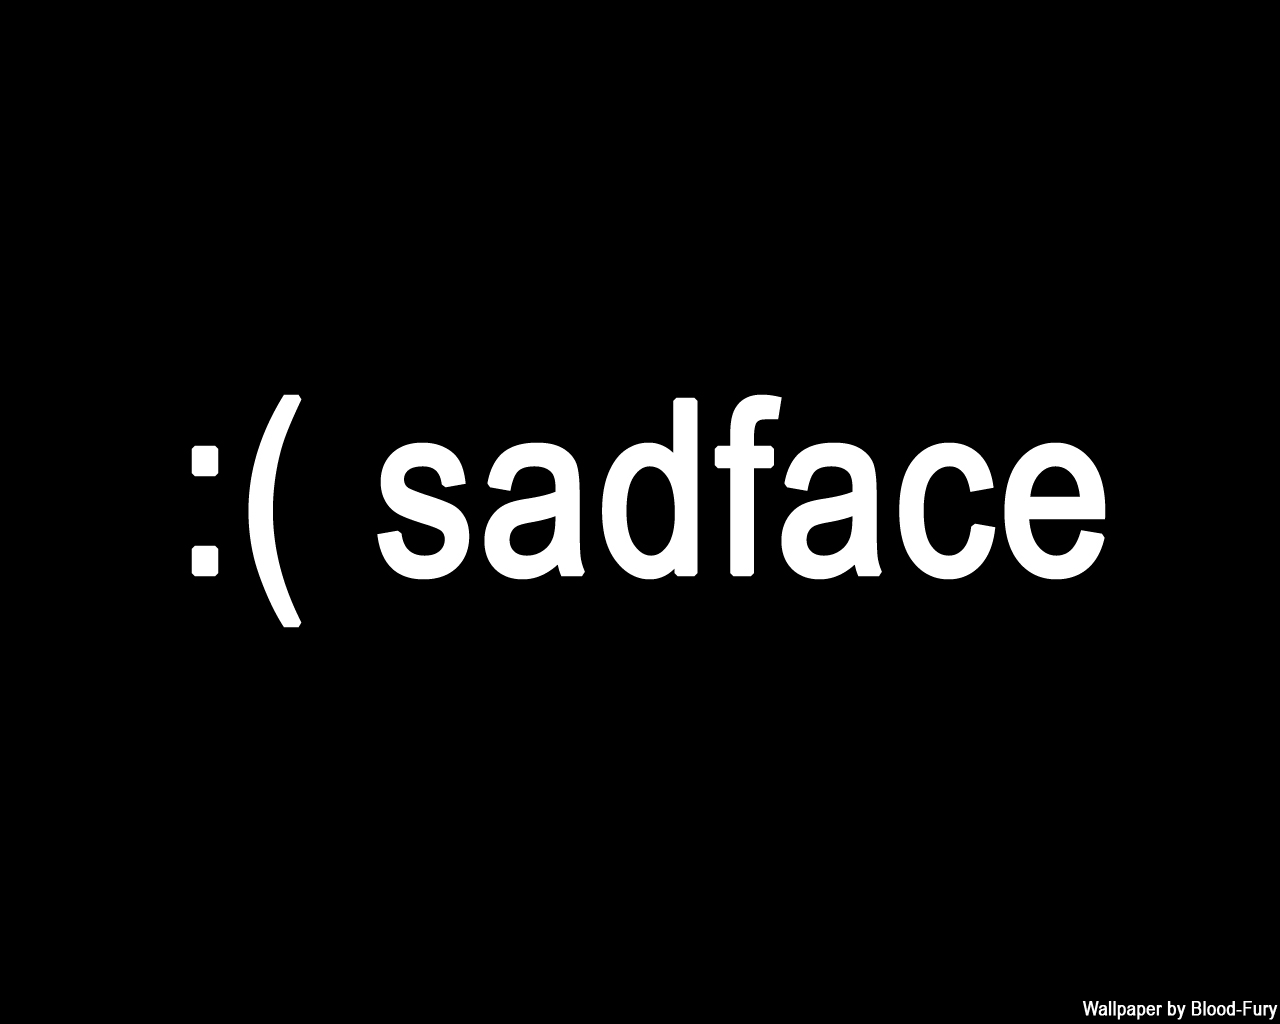 Free Download Sad Face Wallpaper Www 1280x1024 For Your